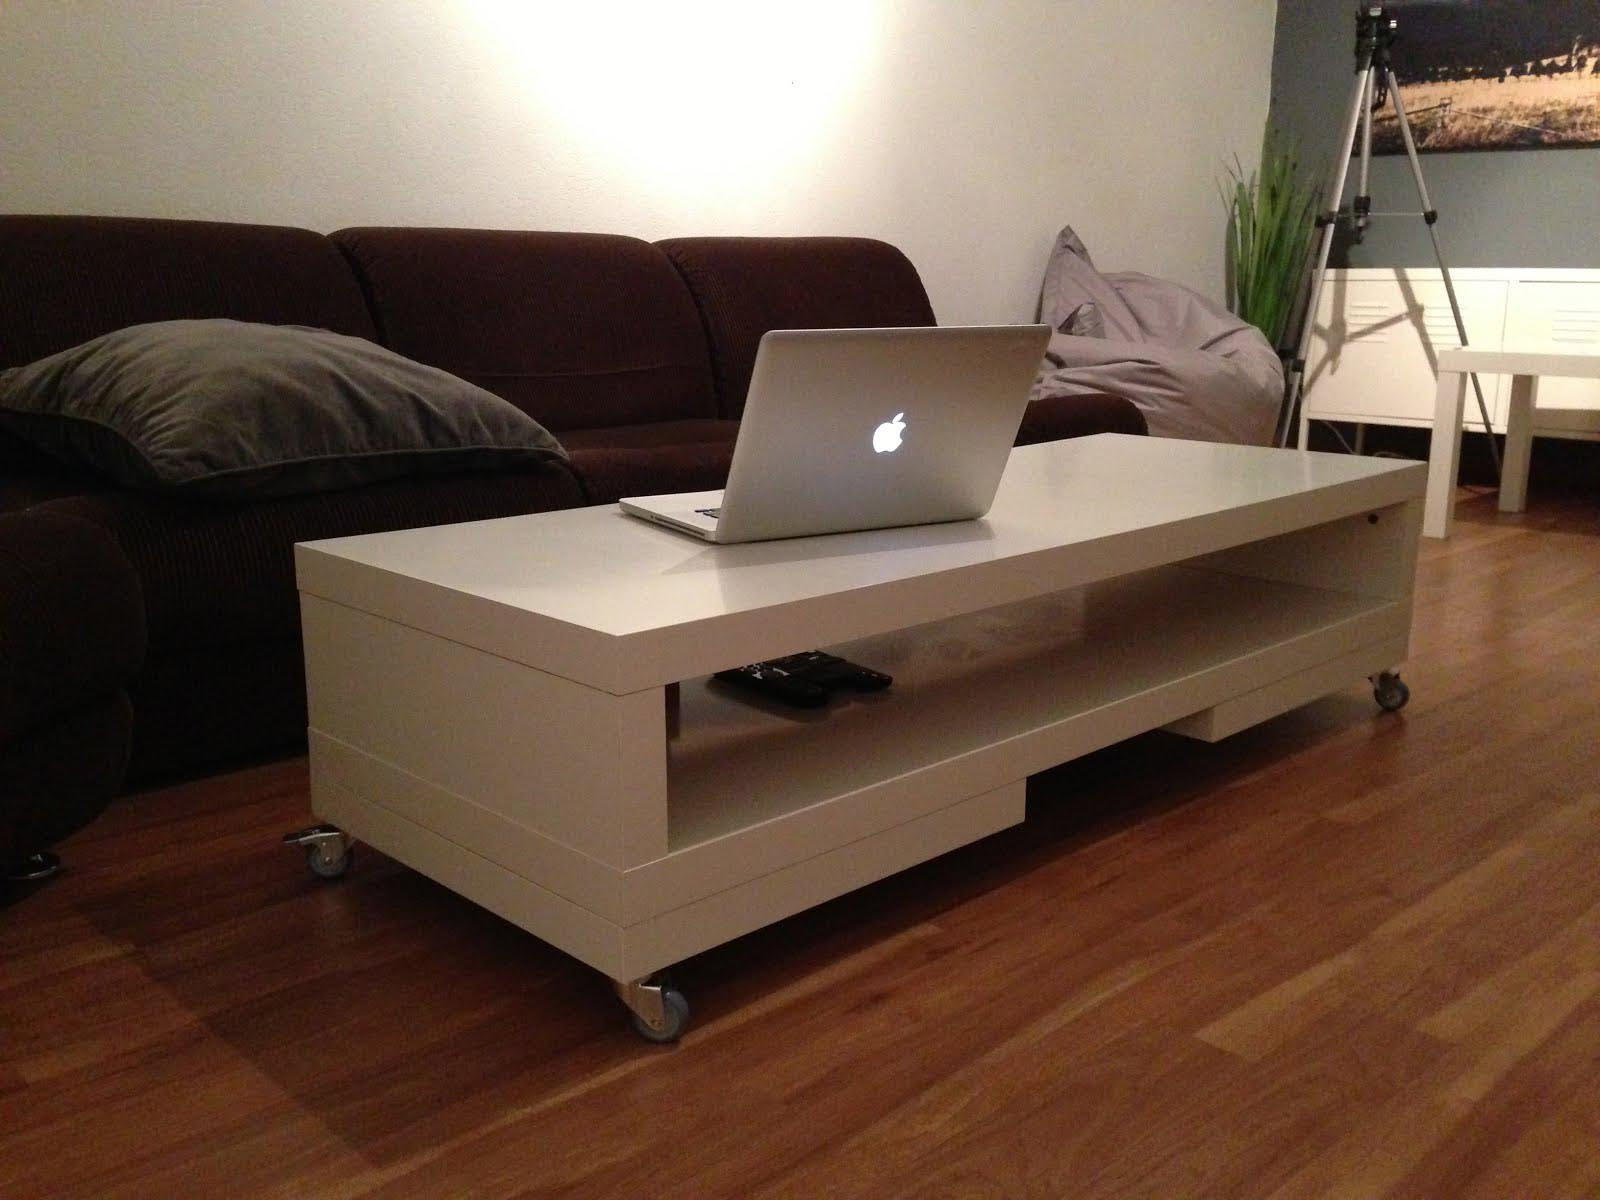 Coffee Table With Wheels IKEA